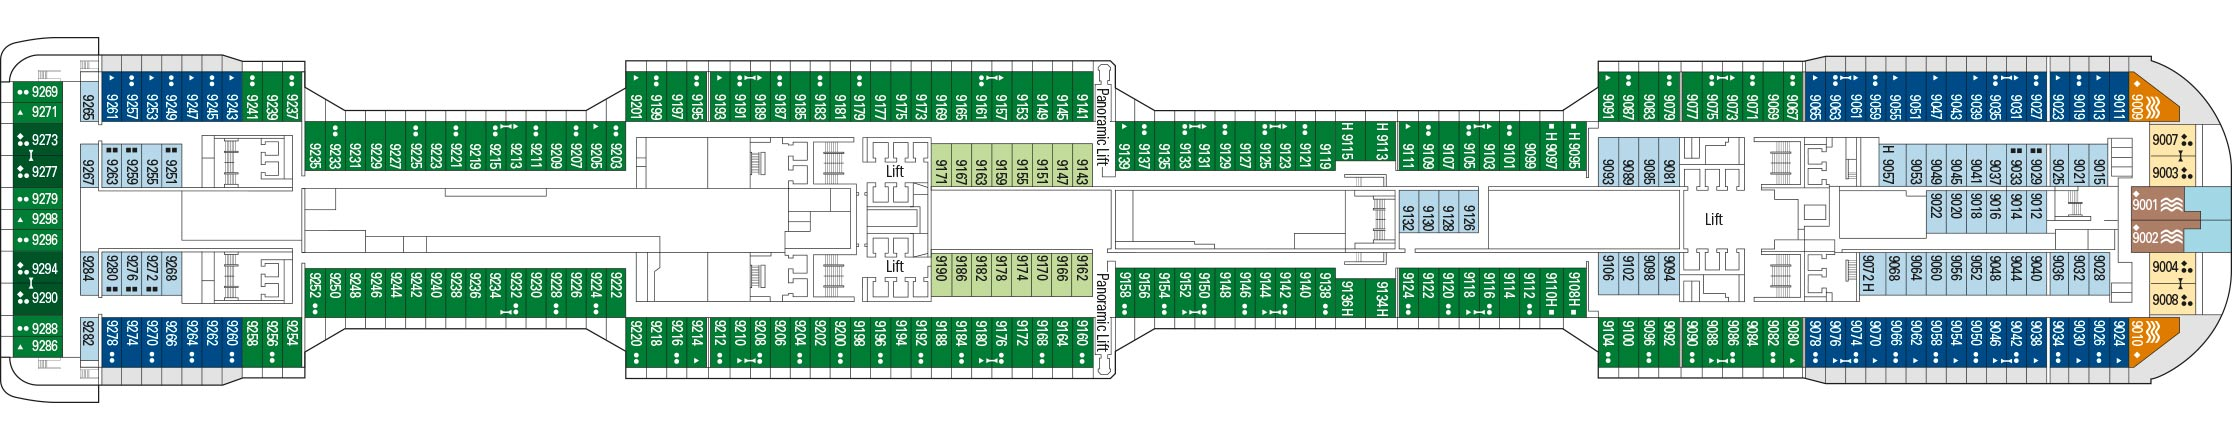 MSC Bellissima Deck Plan: 09 Seaside 20s